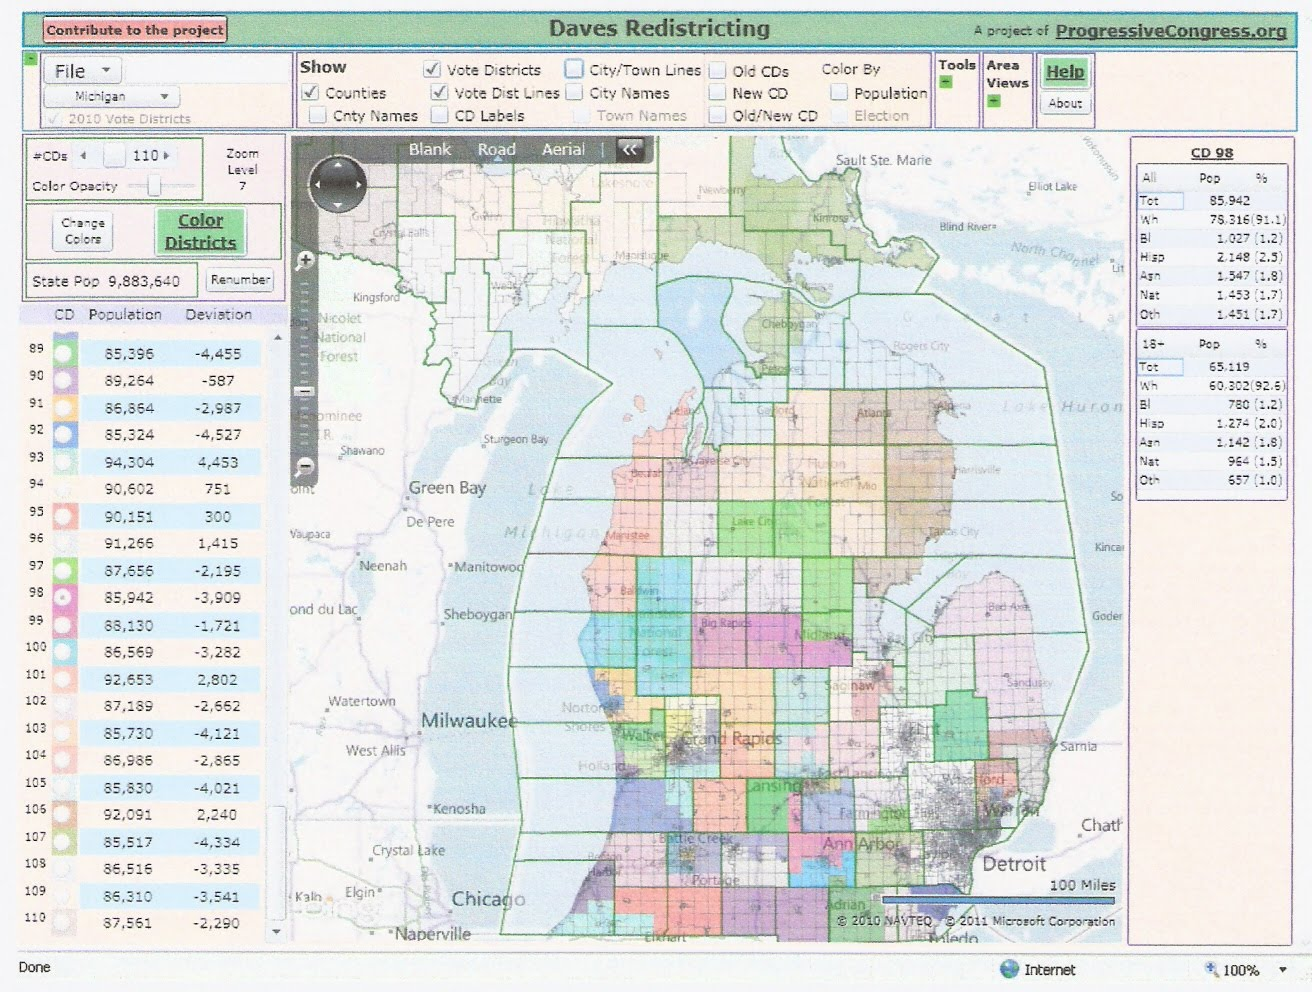 The Western Right Michigan Redistricting State House Part IV The Rest Of The State